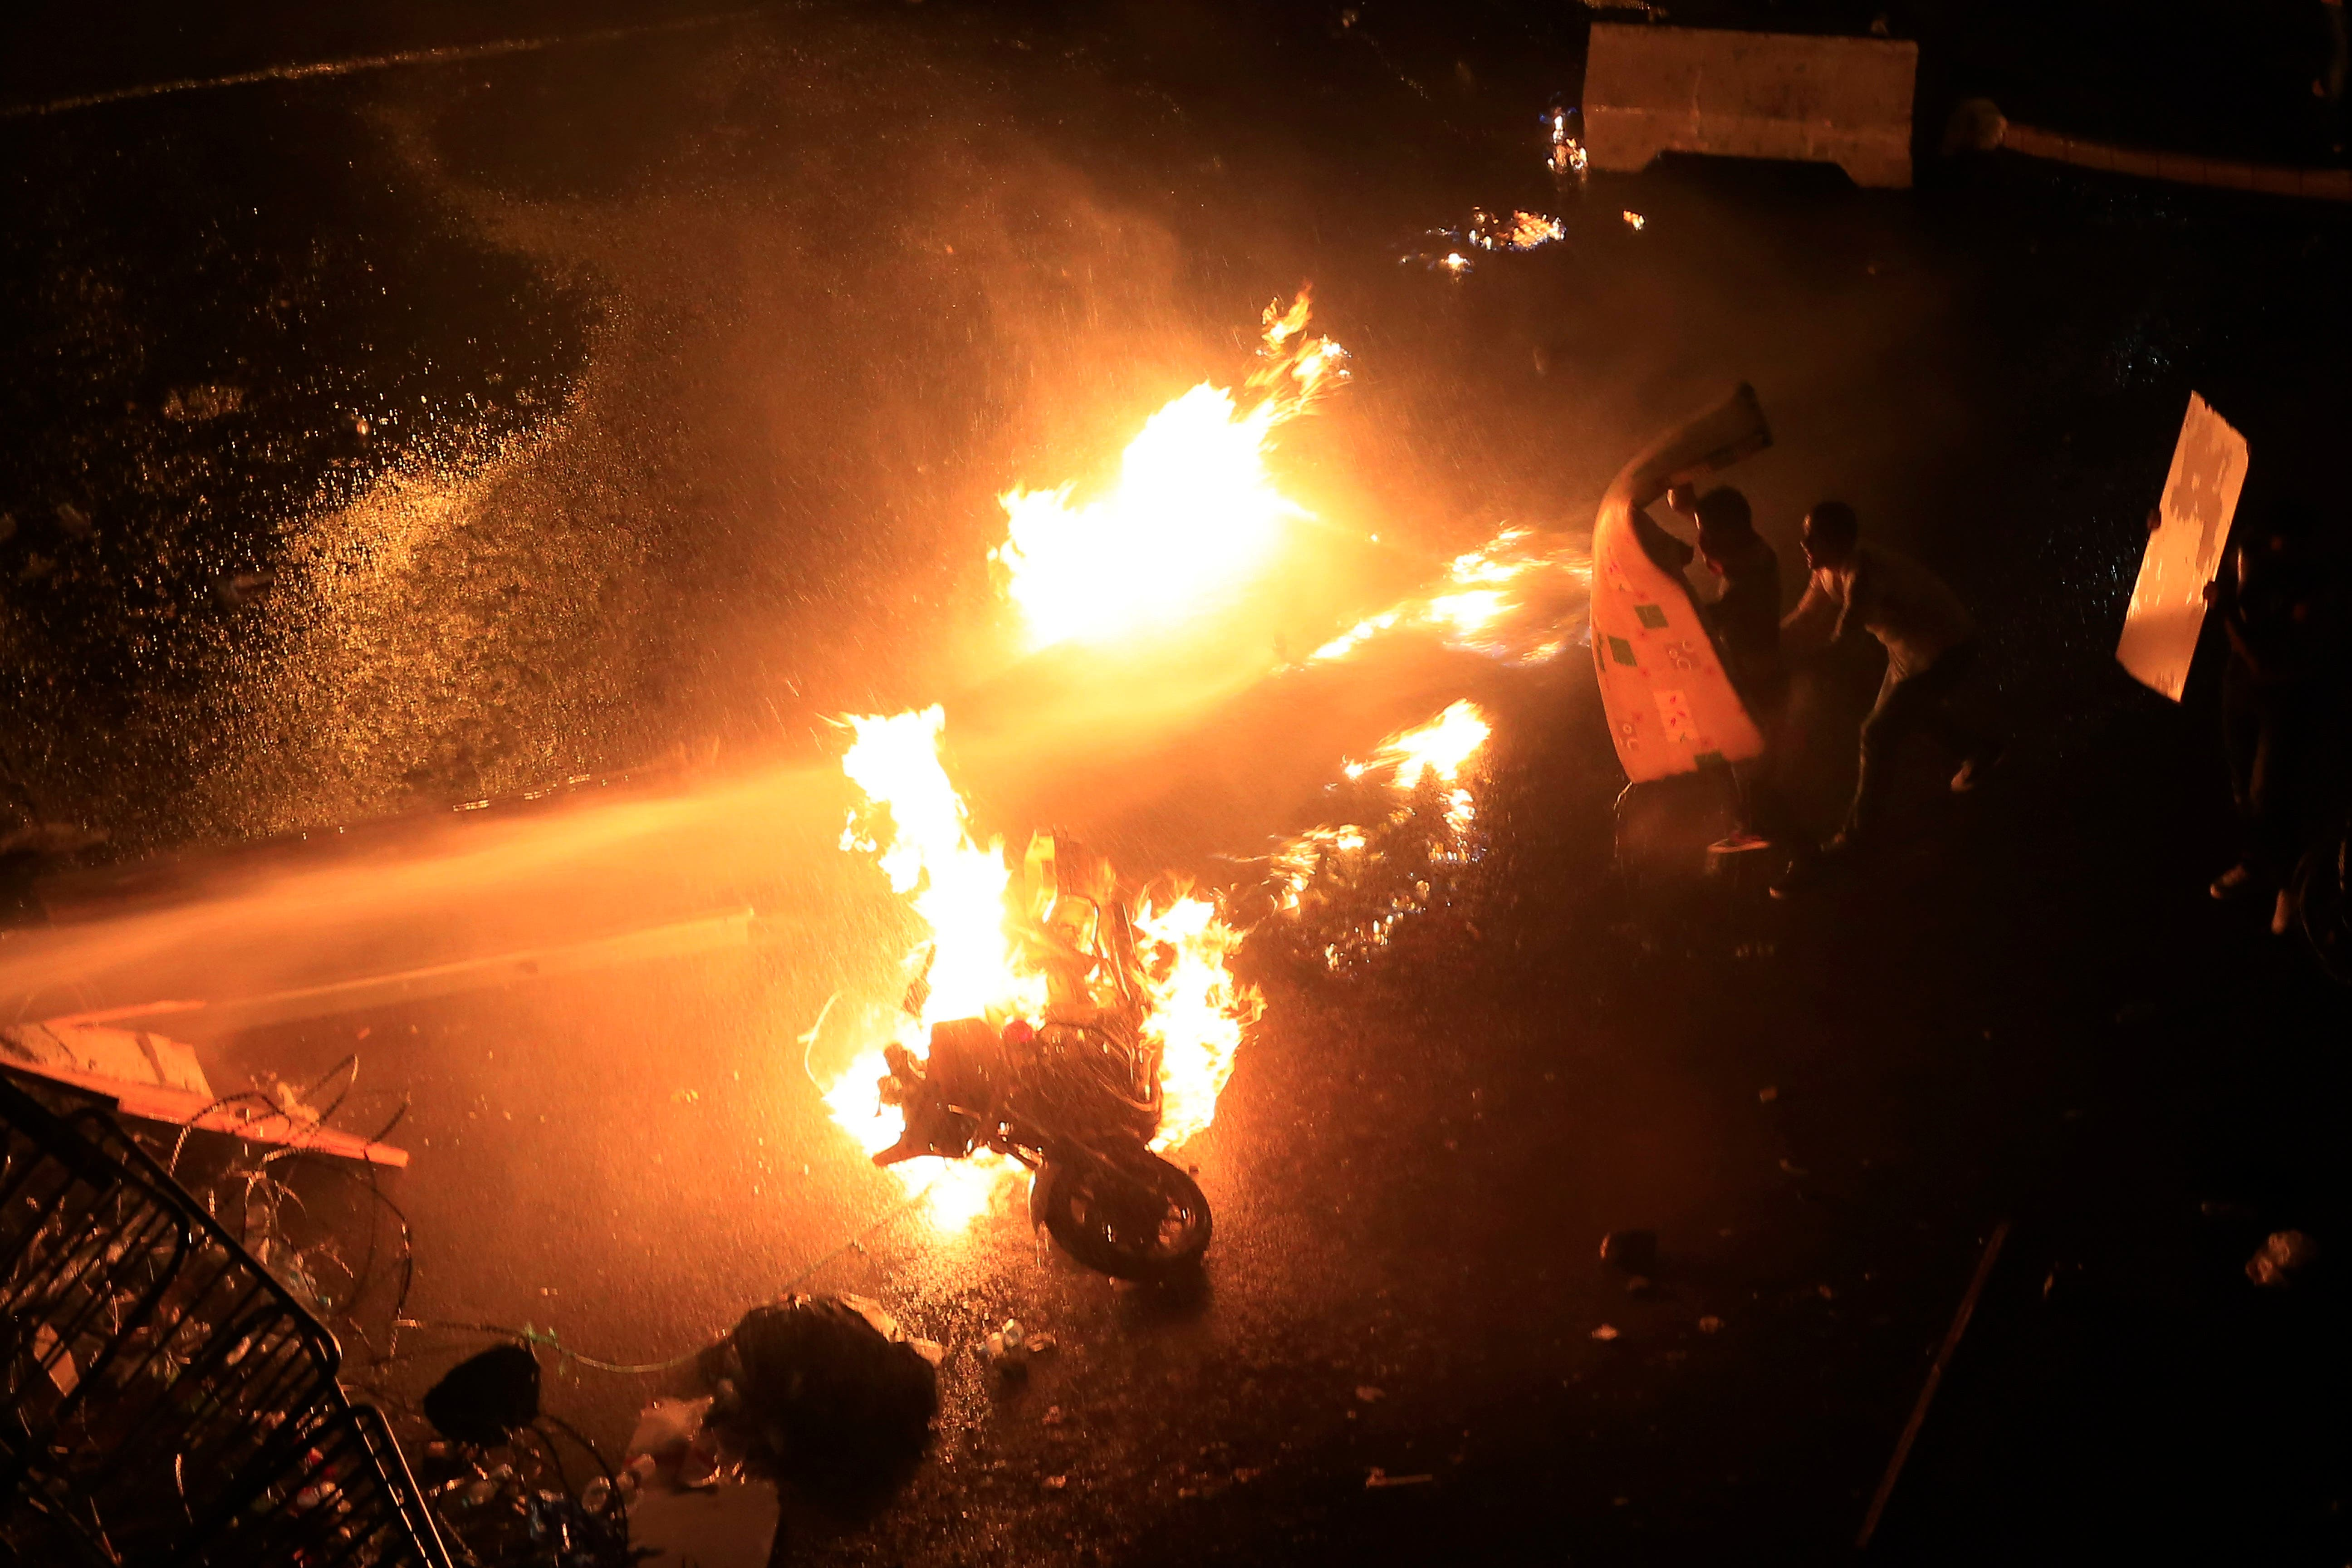 A police motorcycle burns as Lebanese protestors are sprayed by riot police using water cannons, during a protest against the ongoing trash crisis, in downtown Beirut, Lebanon, Sunday, Aug. 23, 2015. AP